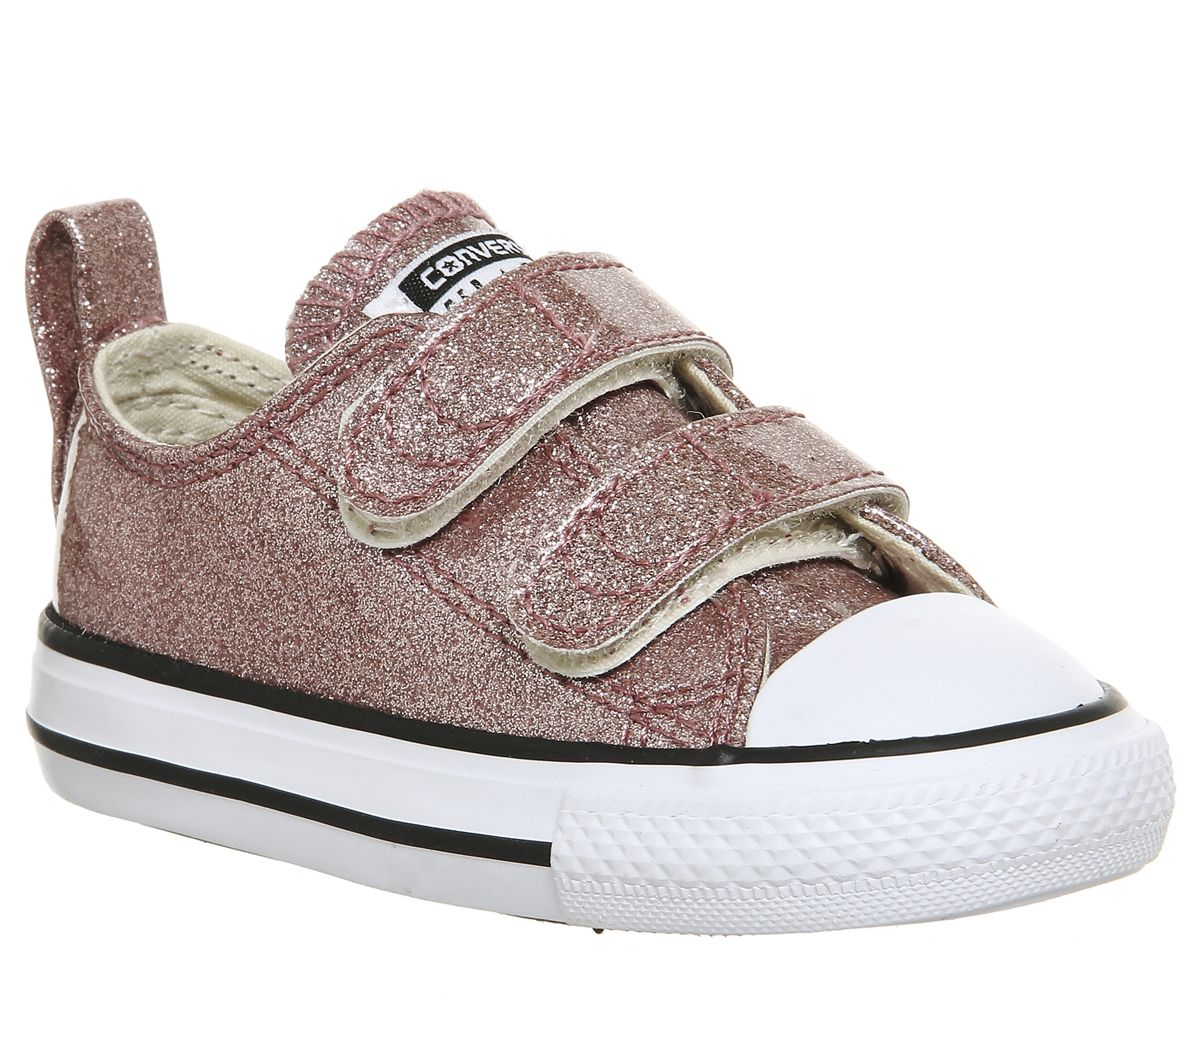 083f56fdc0d Converse All Star 2vlace Rose Gold Glitter - Unisex